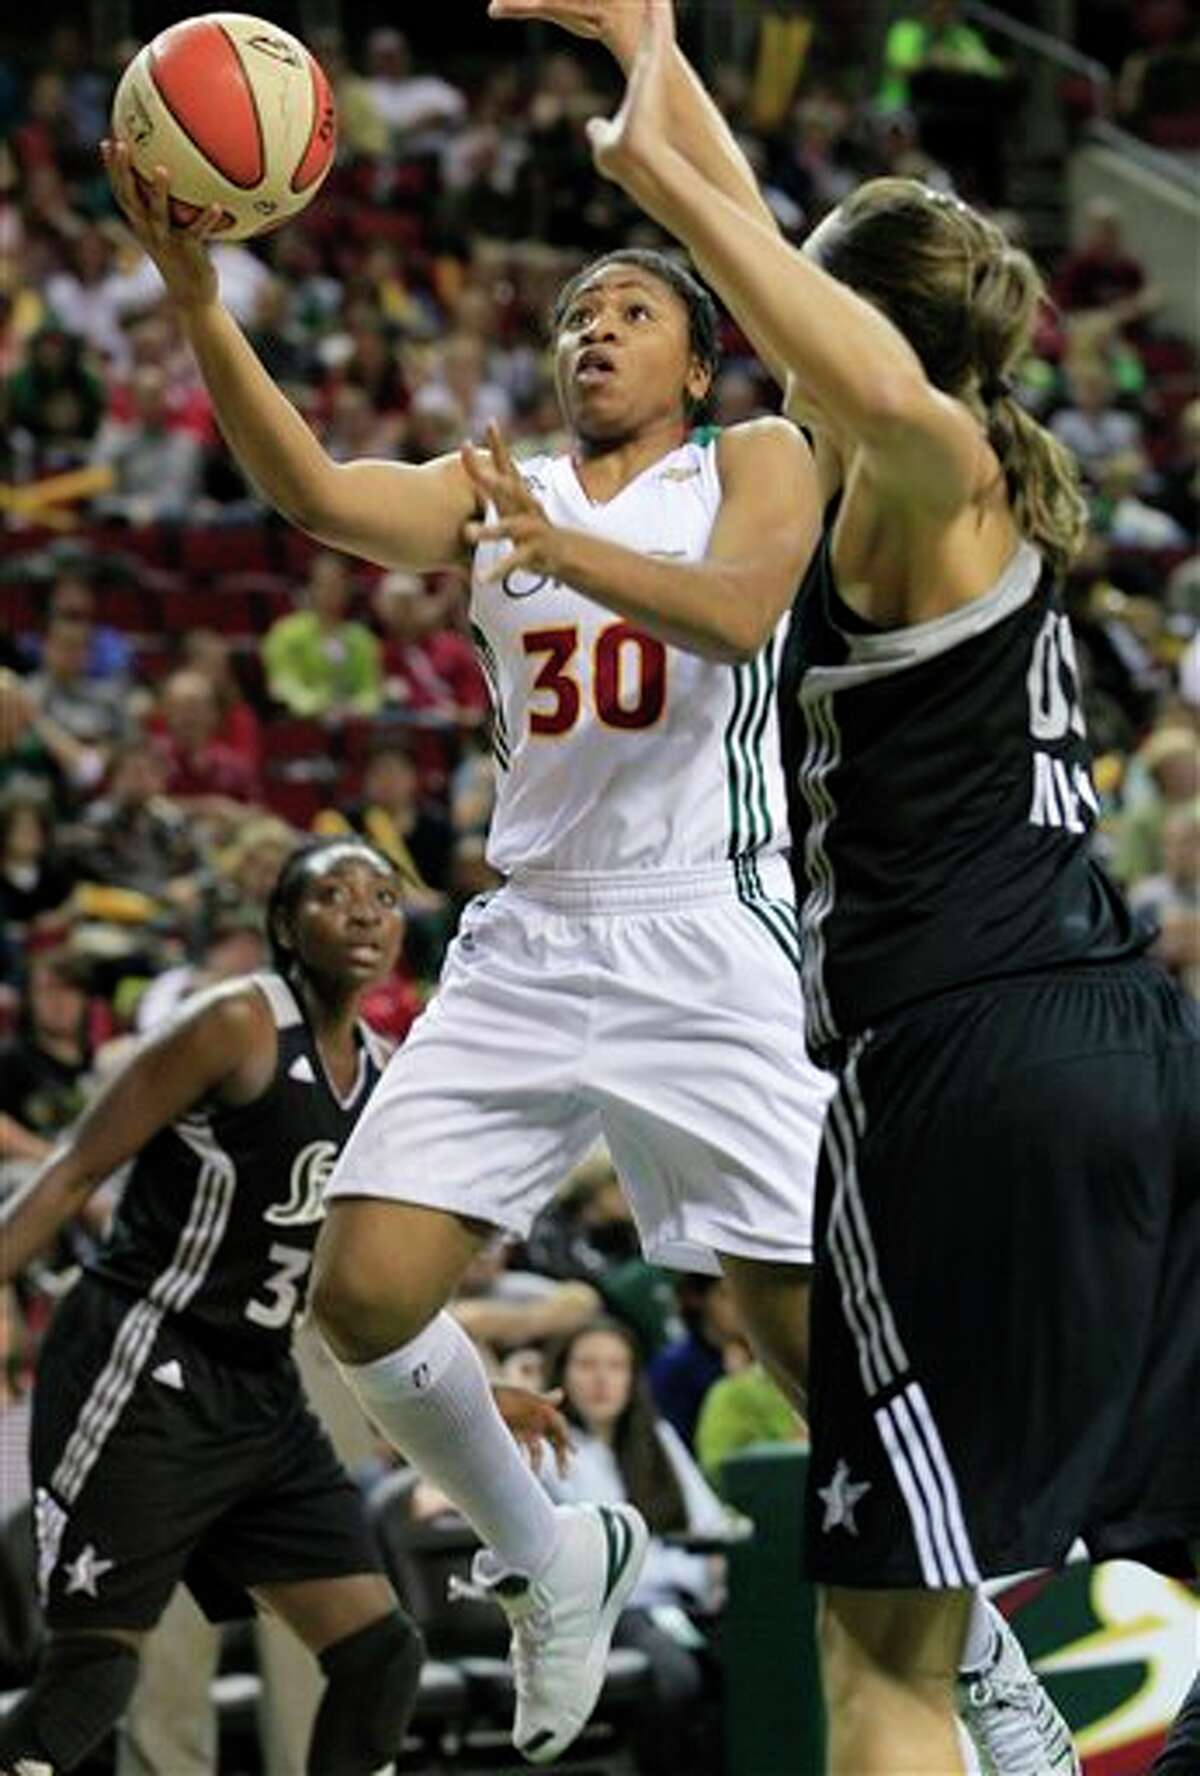 Seattle Storm's Tanisha Wright (30) drives as San Antonio Silver Stars' Sophia Young, left, and Ruth Riley defend in the first half of a WNBA basketball game Thursday, July 21, 2011, in Seattle. (AP Photo/Elaine Thompson)